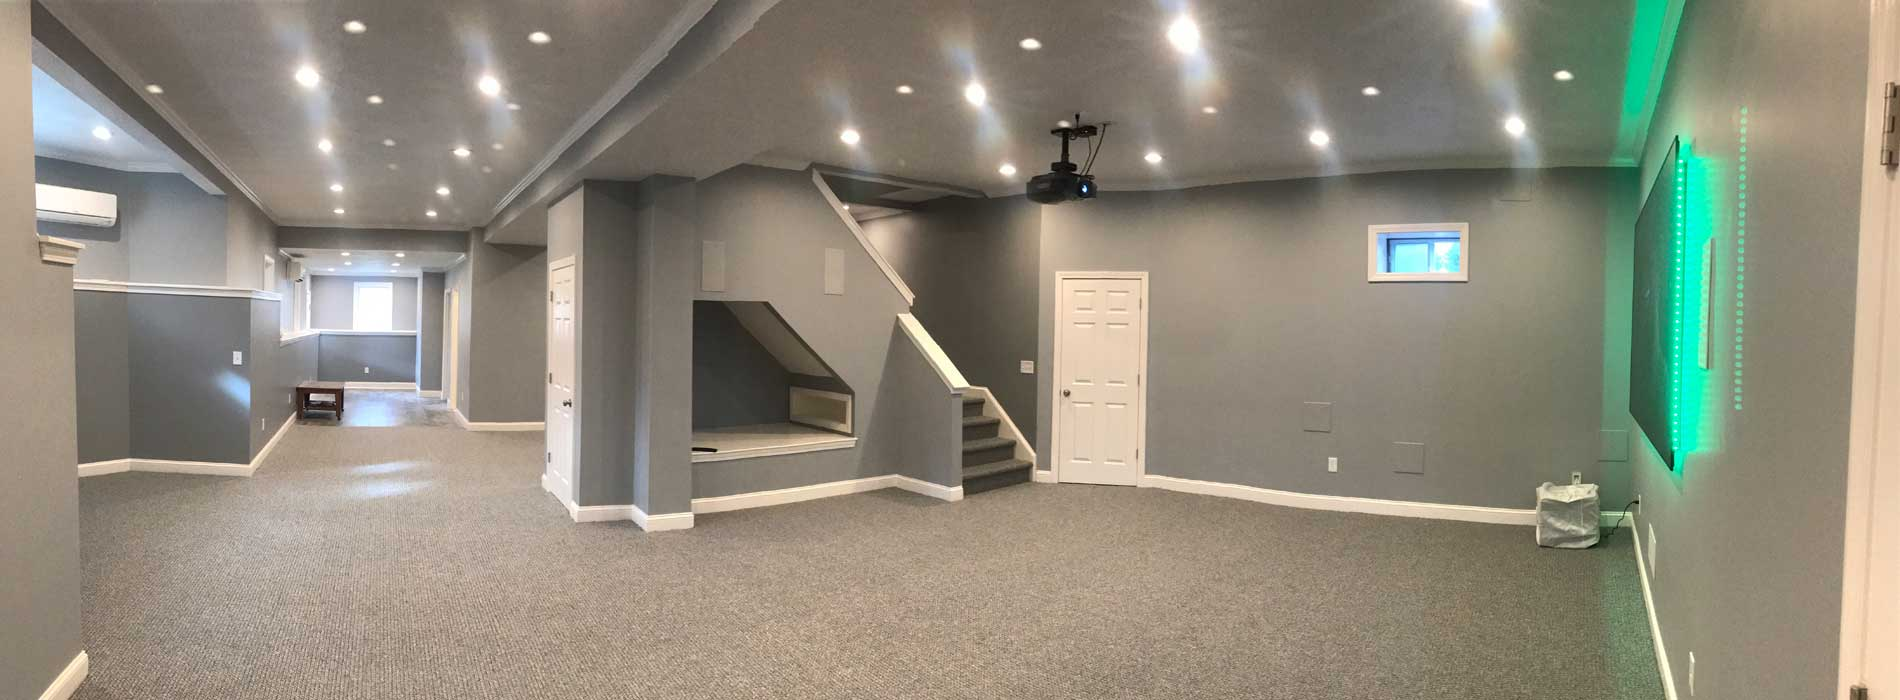 Basement Remodeling  MD England  Sons